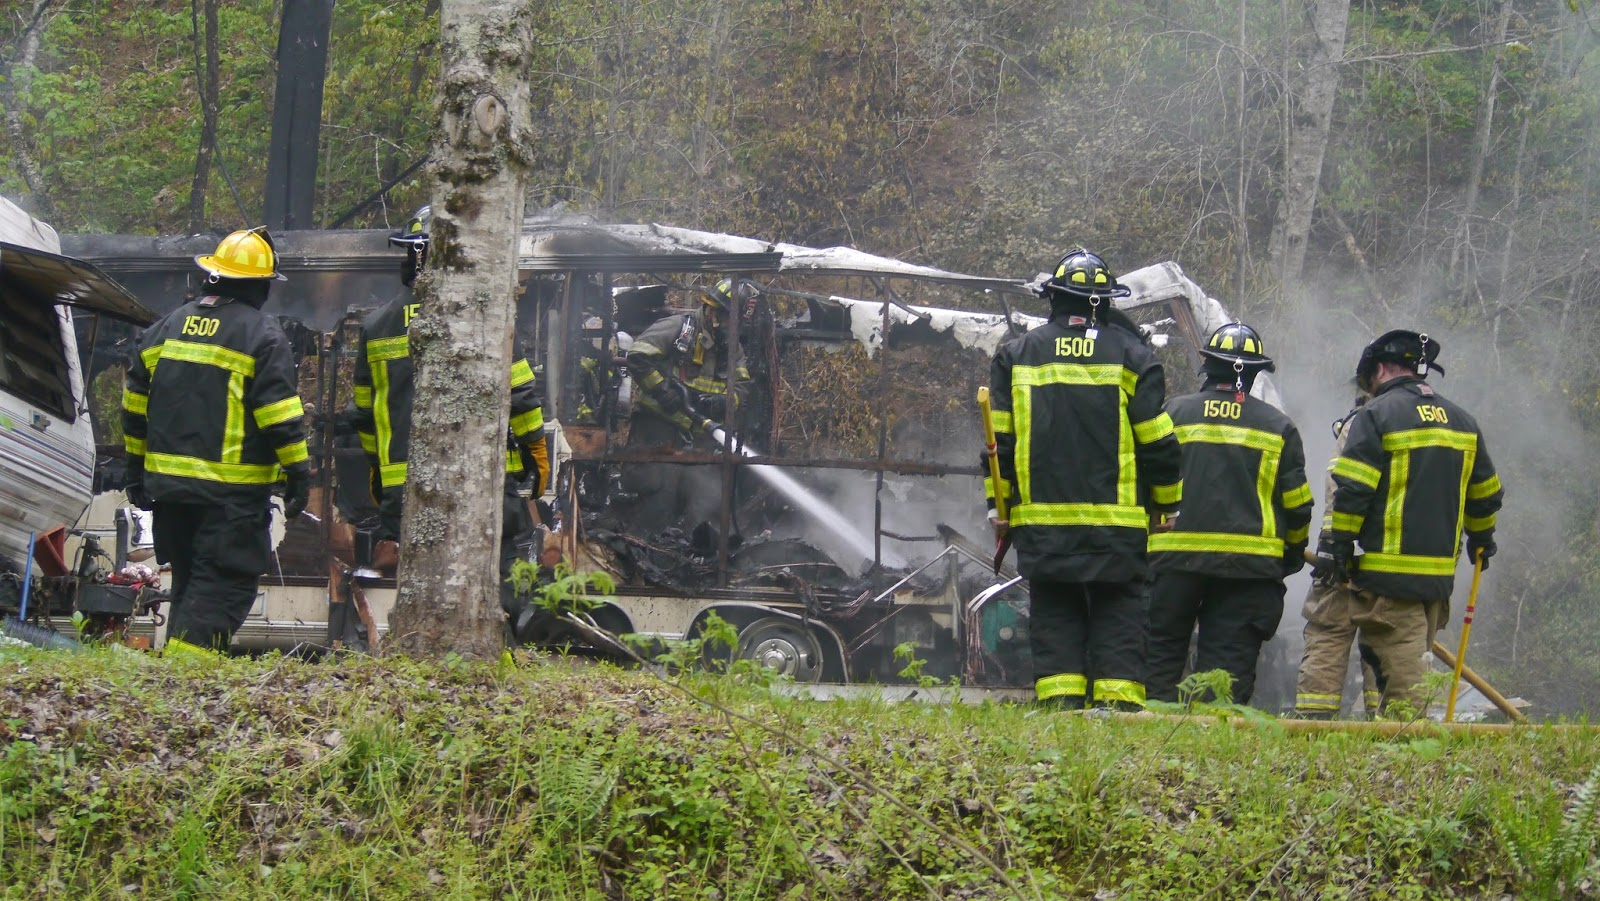 Firefighters conduct overhaul and salvage operations